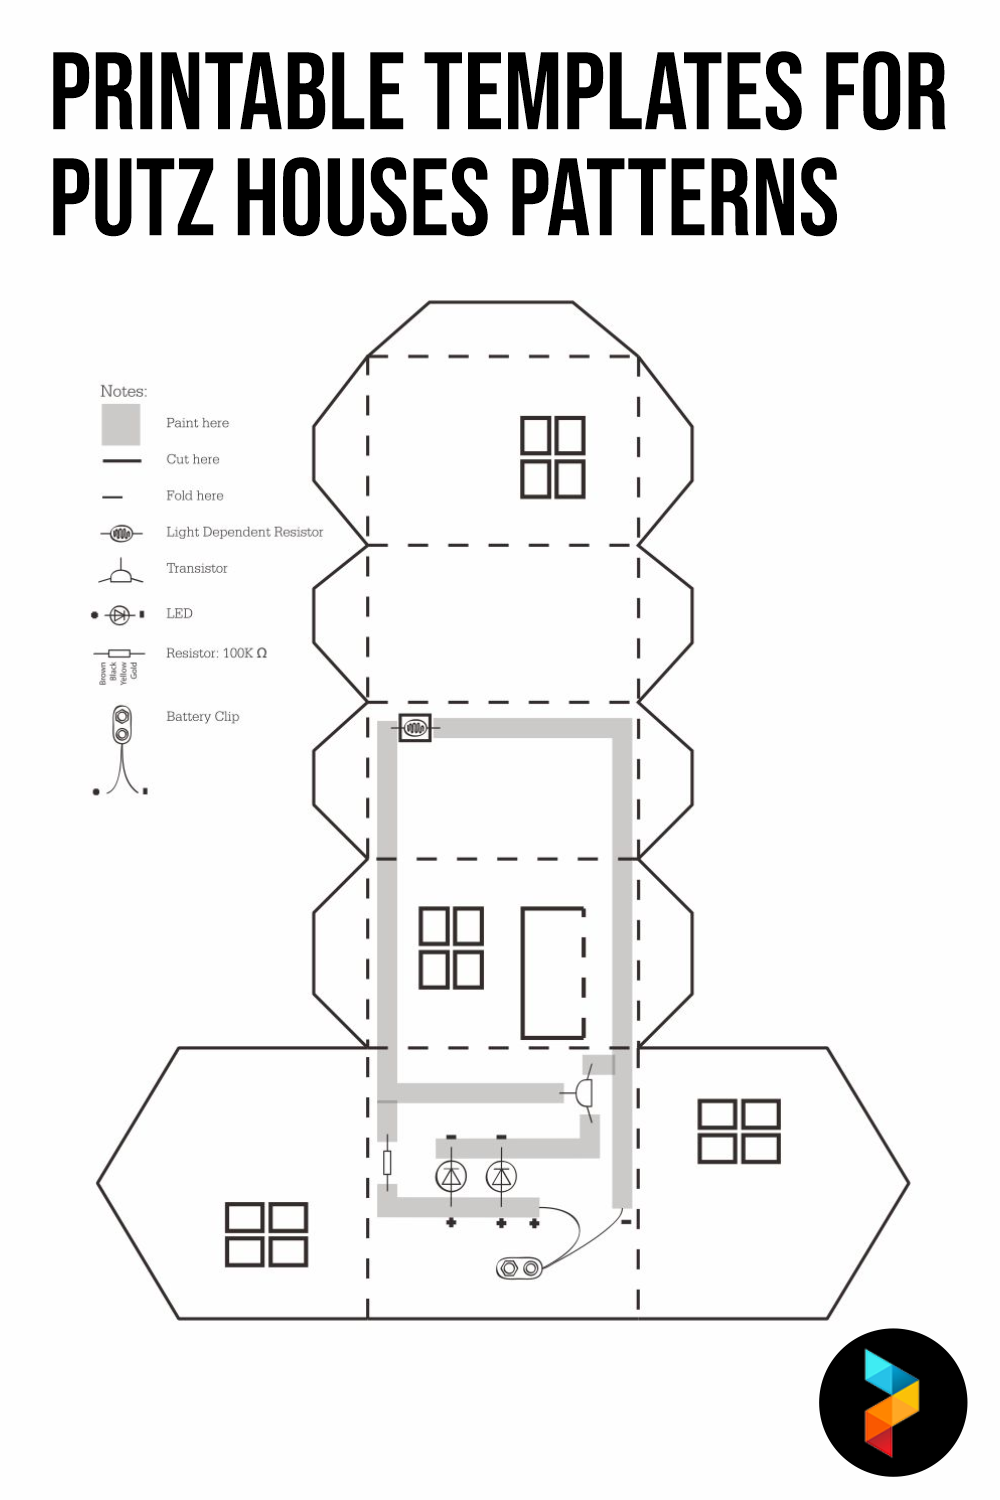 Printable Templates For Putz Houses Patterns